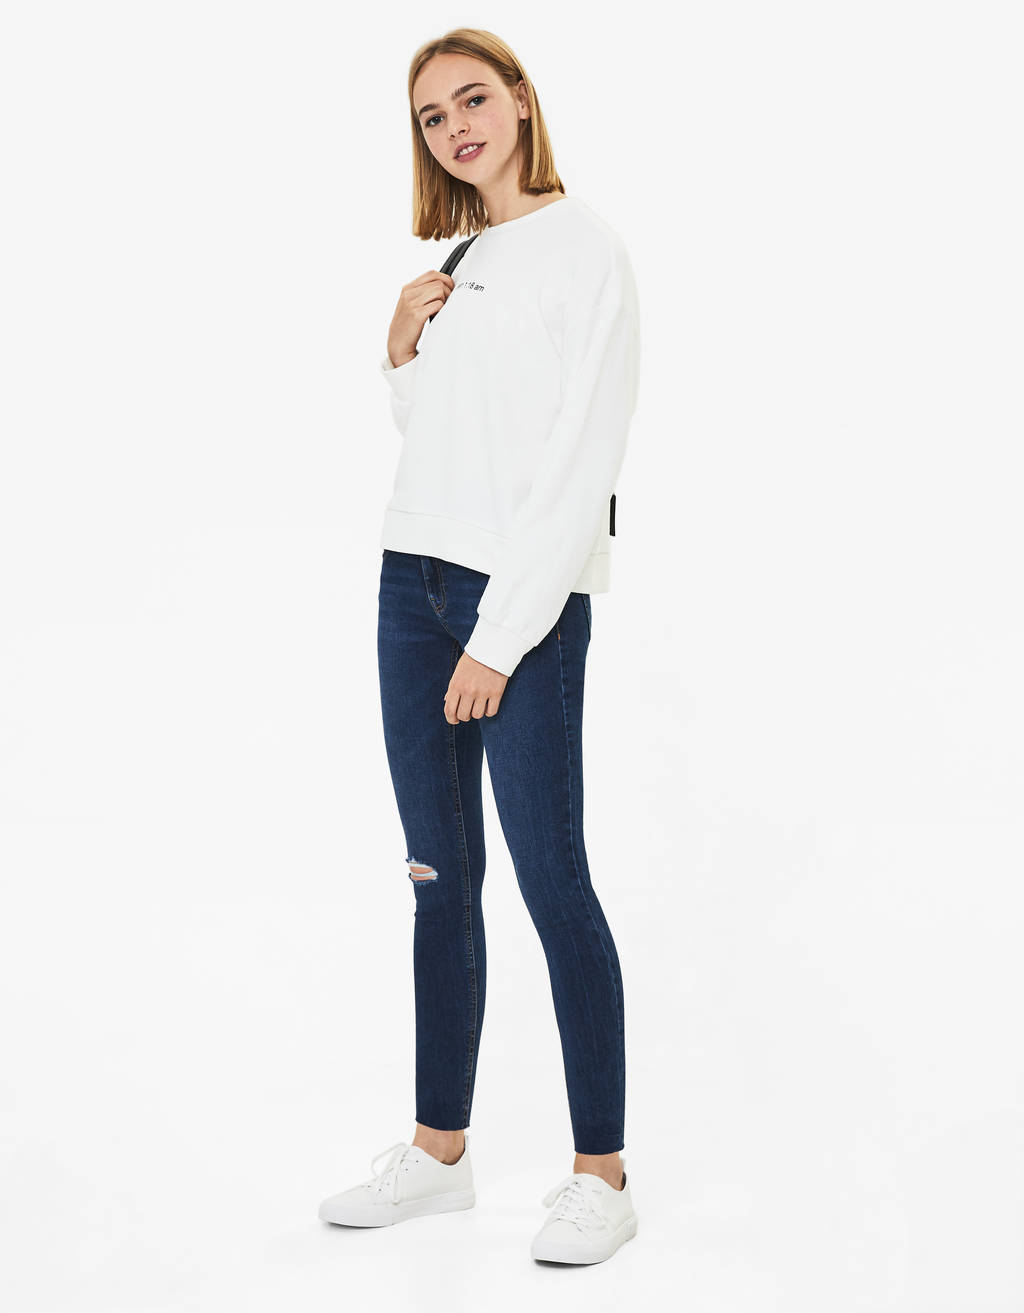 Mid-rise push-up jeans